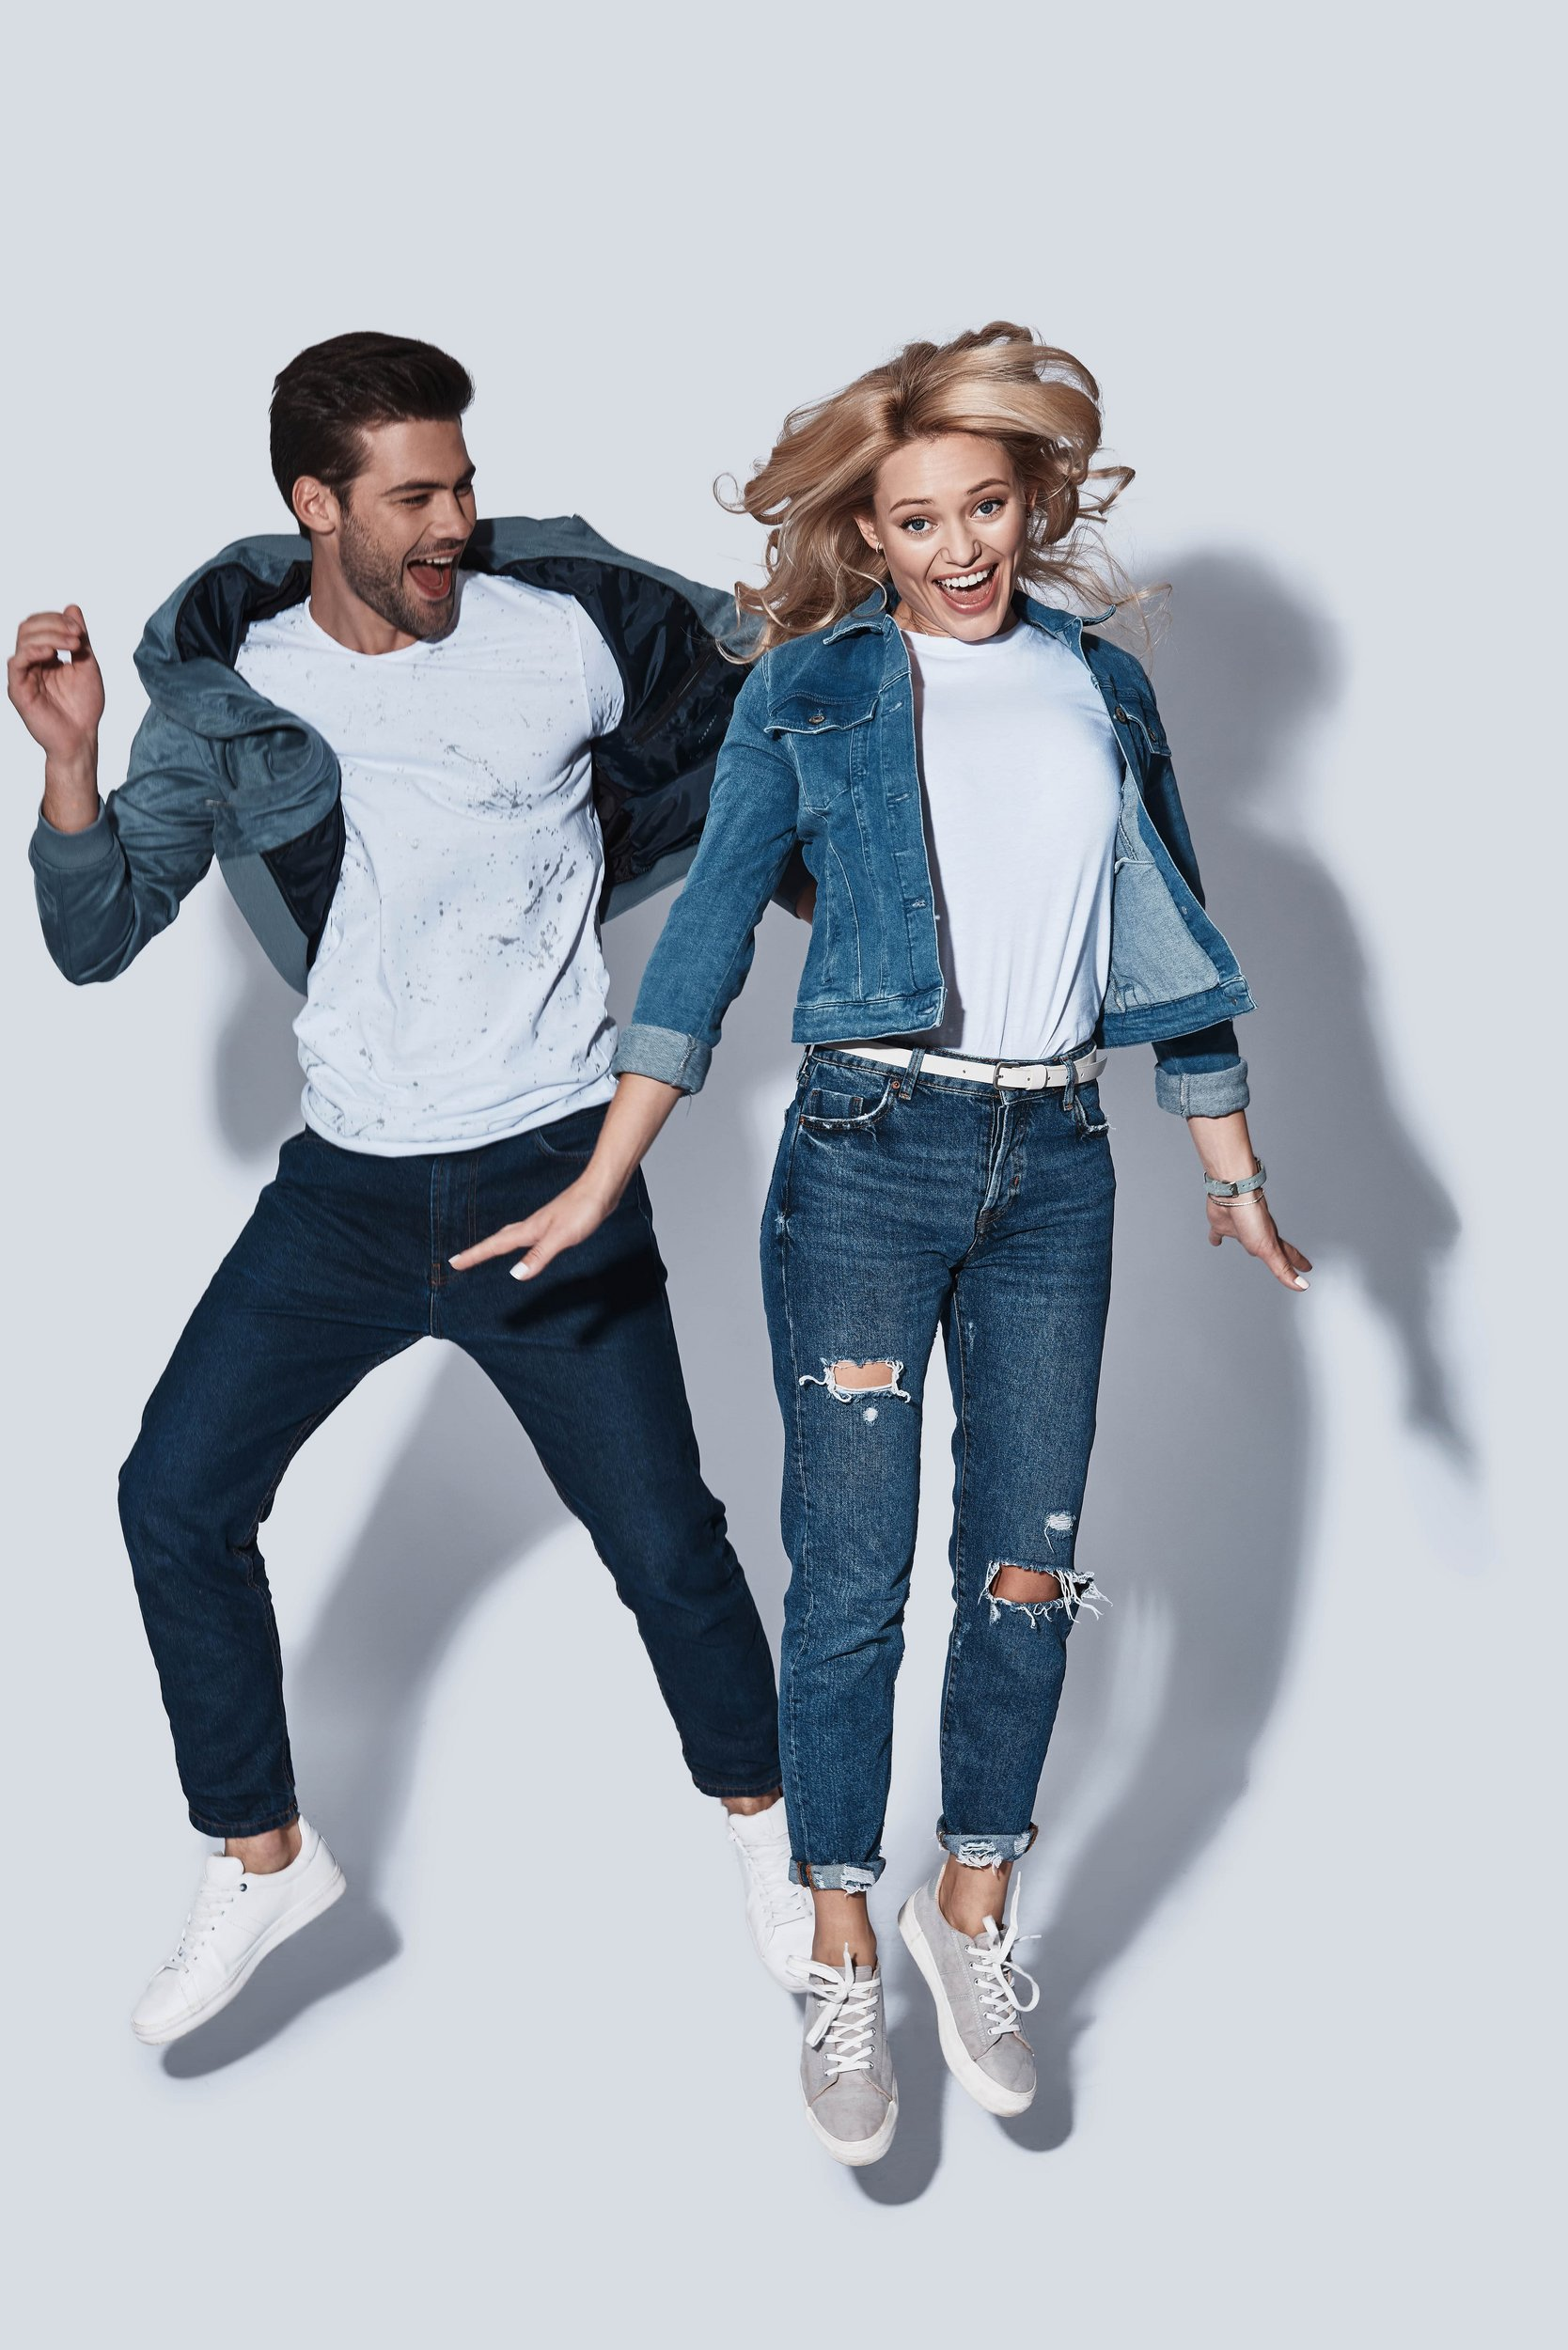 Jumping couple wearing jeans an t-shirts